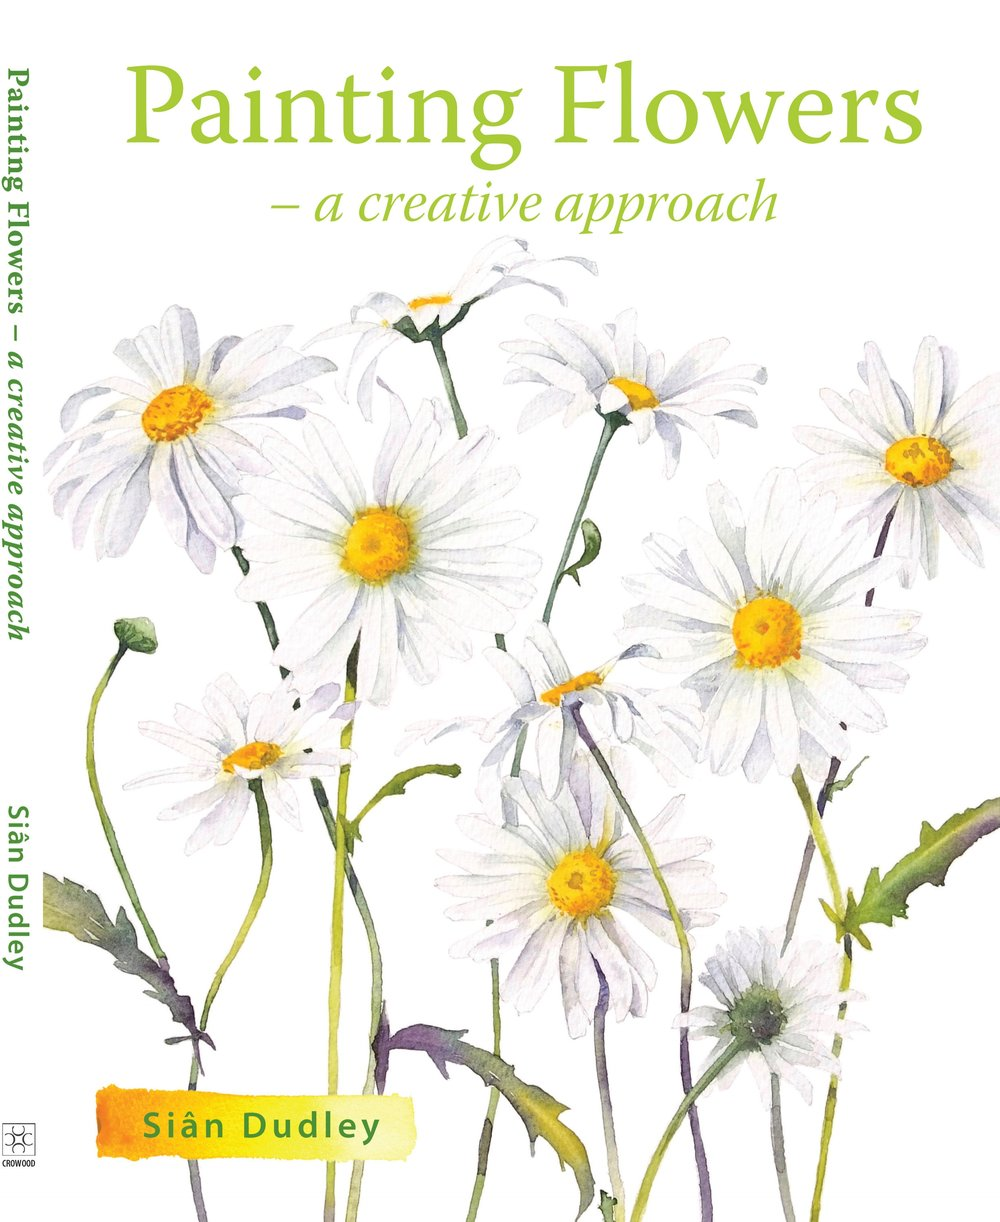 PaintingFlowersCover